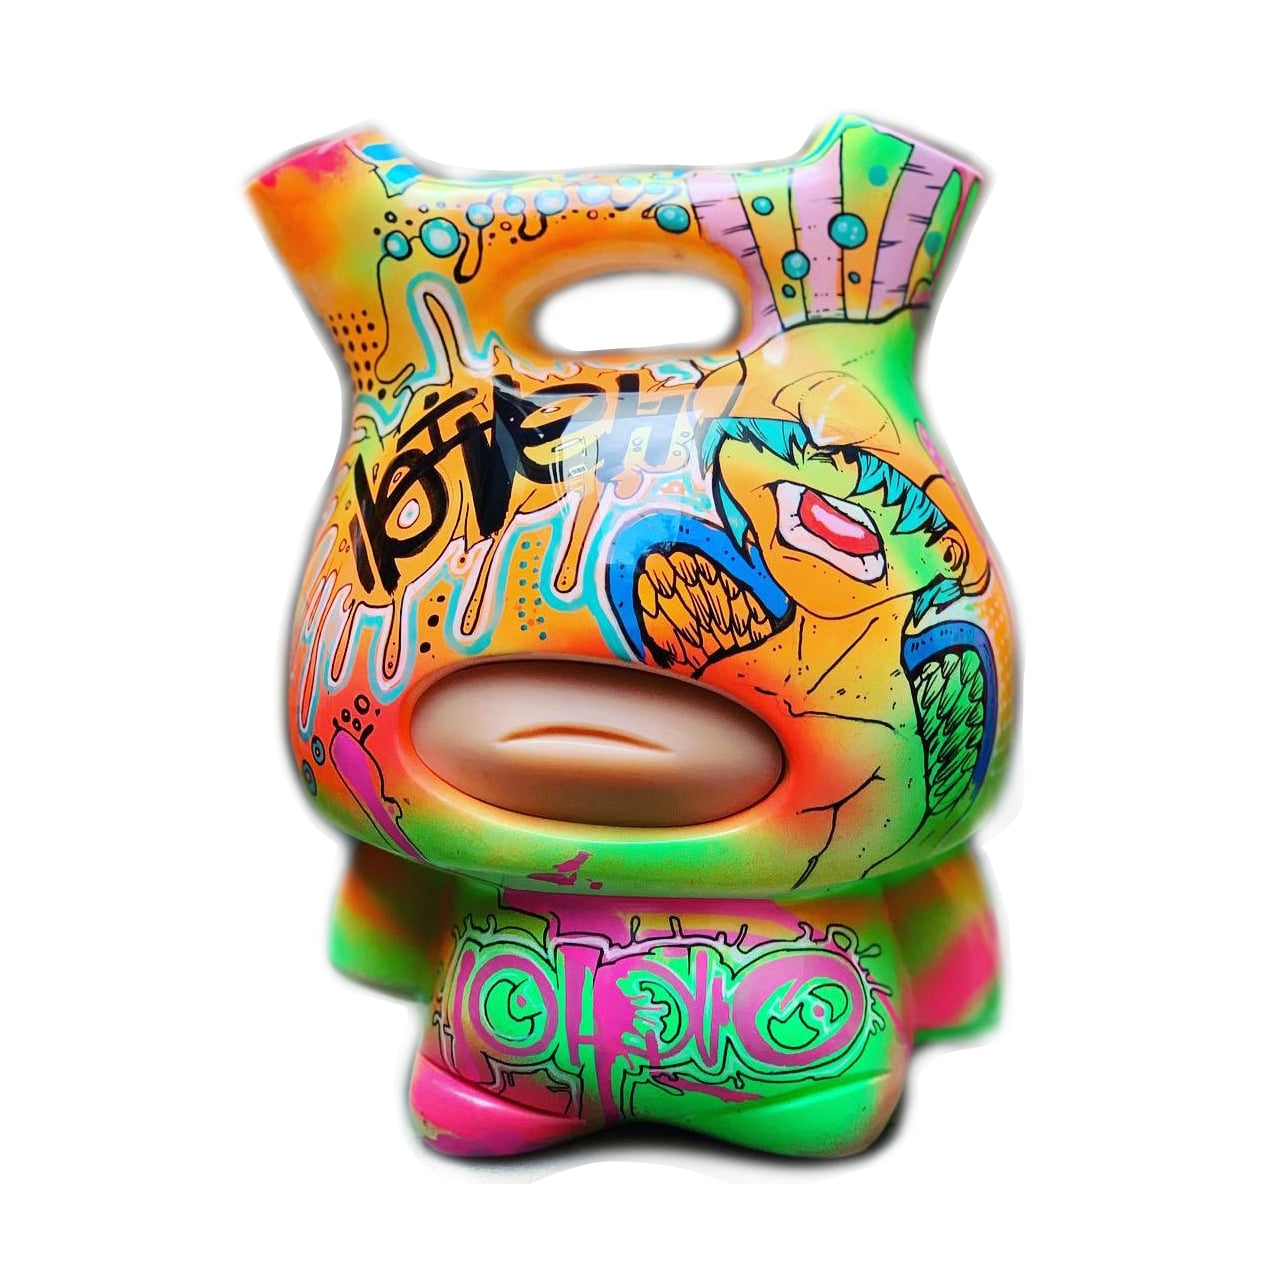 Limited edition Art toy WAKO Storyteller